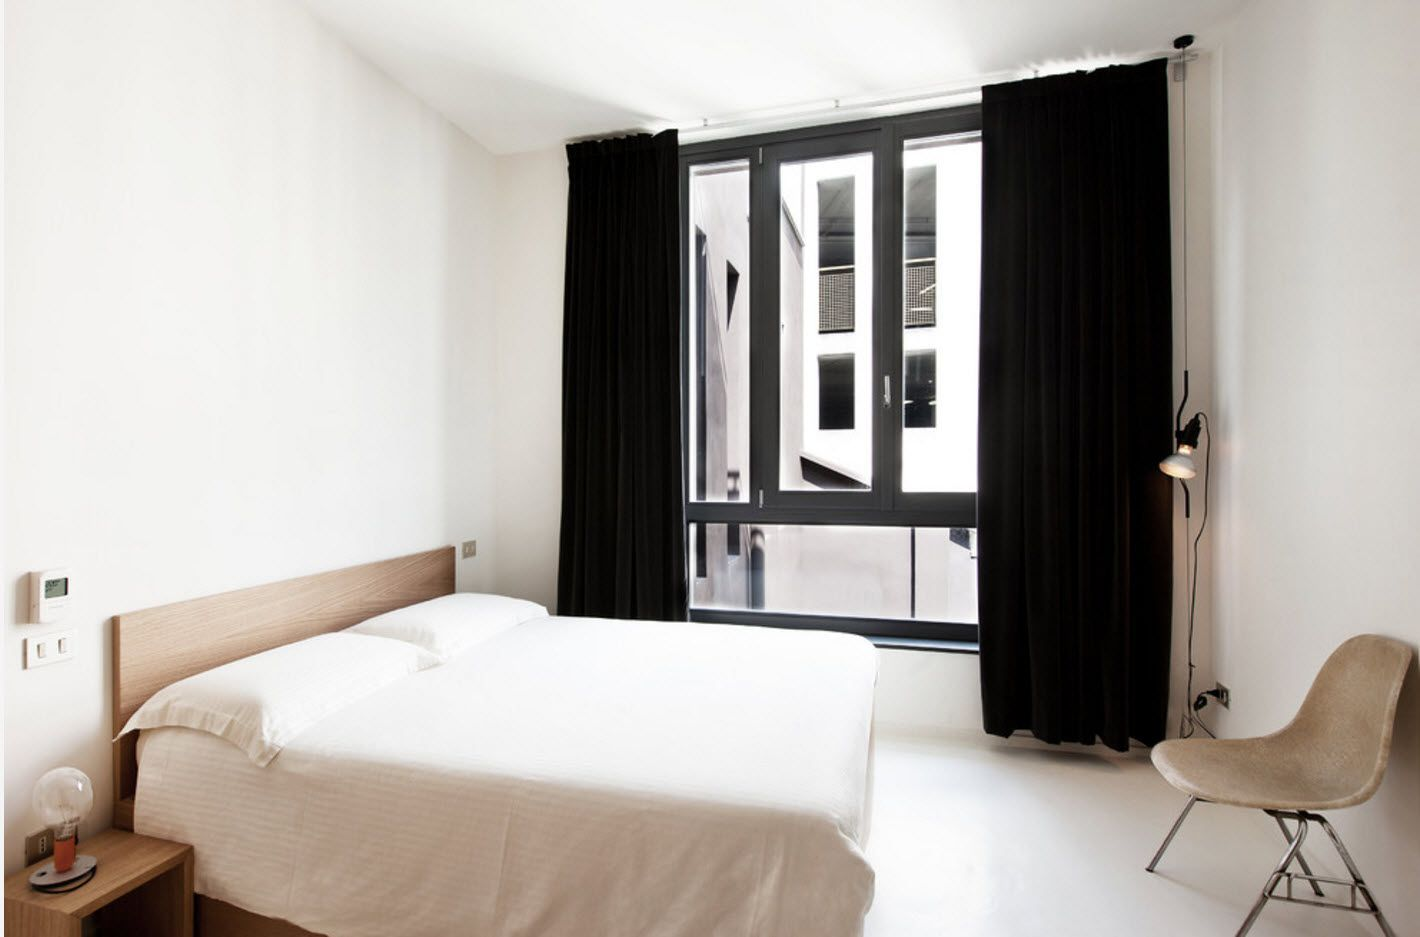 Black drapes look chic in the ascetic white interior